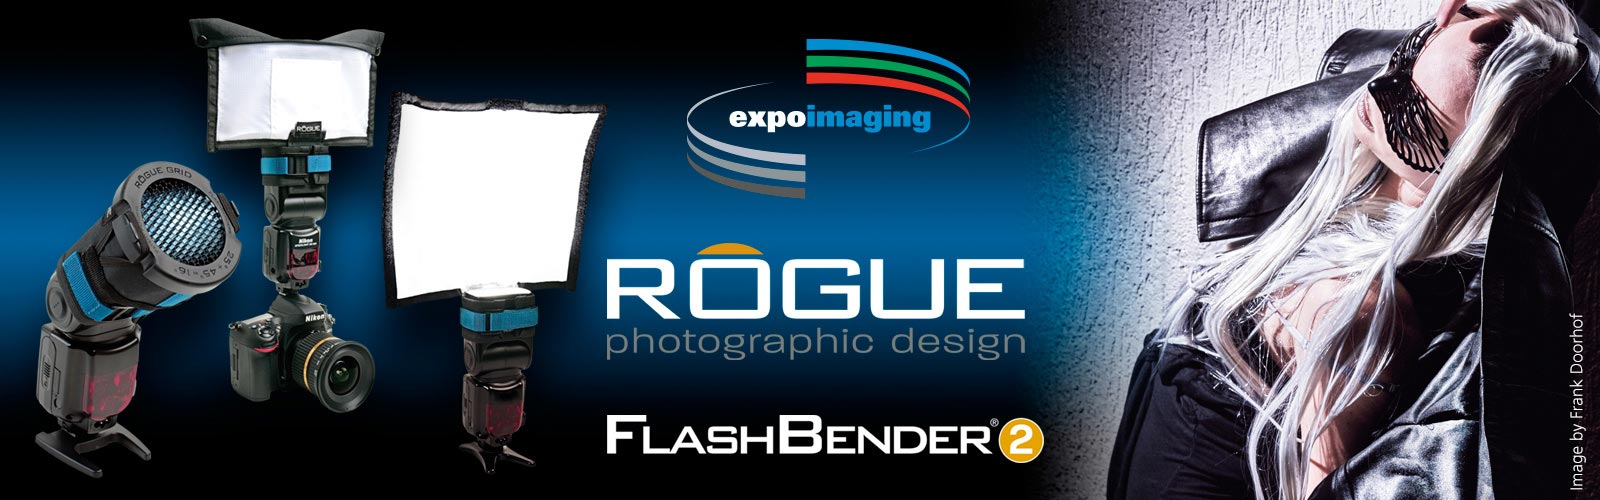 Rogue - photographic design